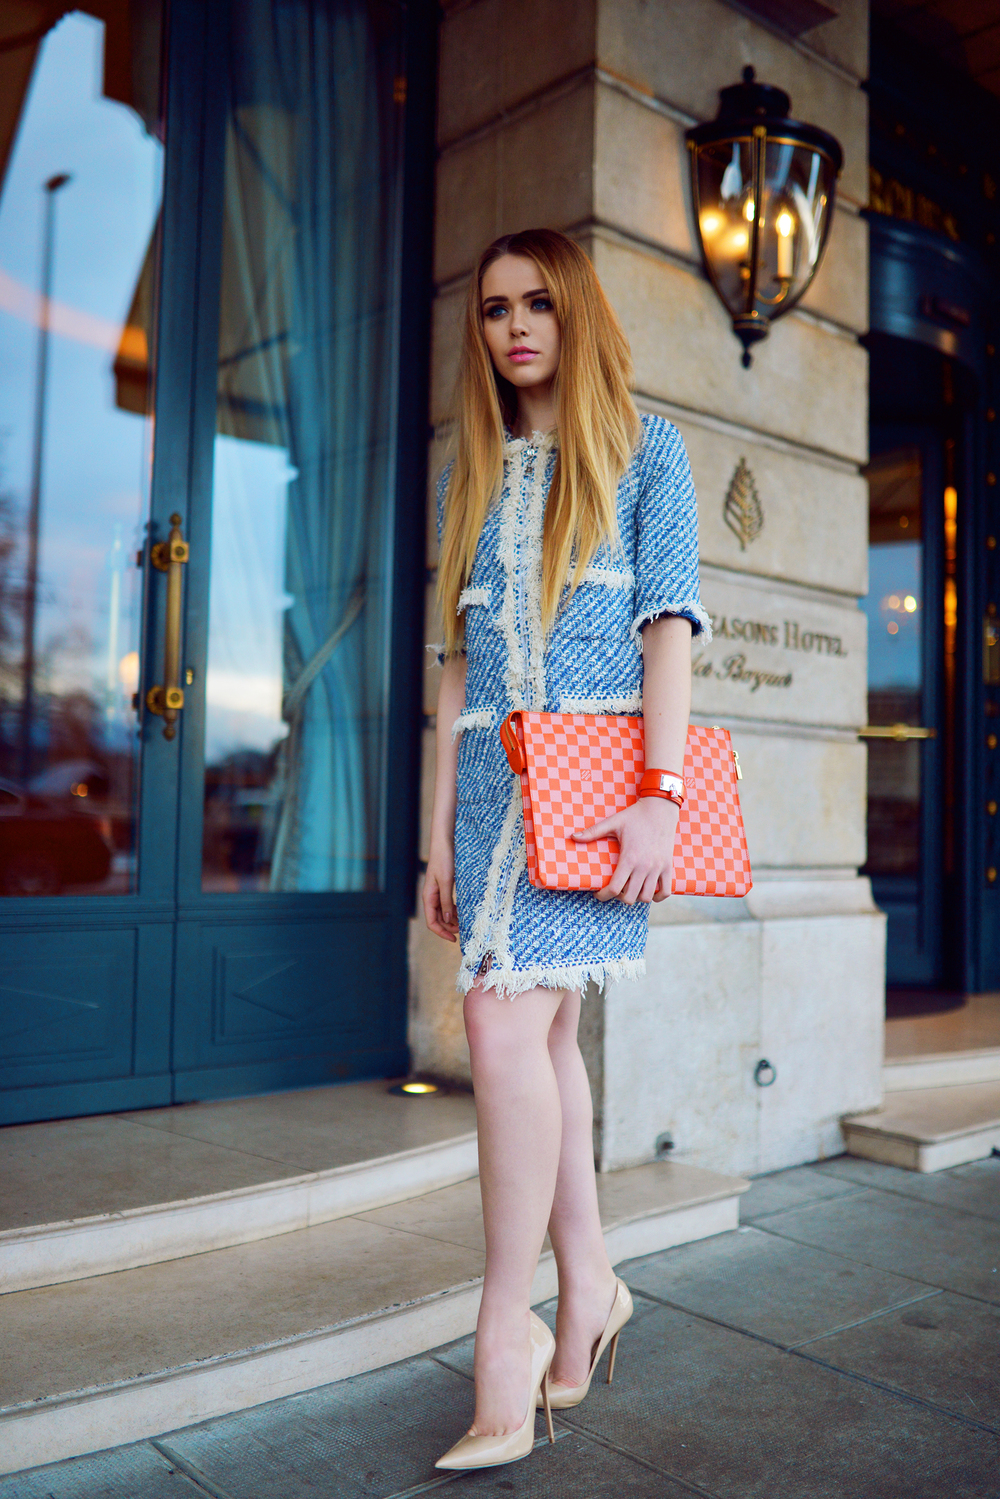 The flawless Kristina Bazan from Kayture with her head to toe Louis Vuitton